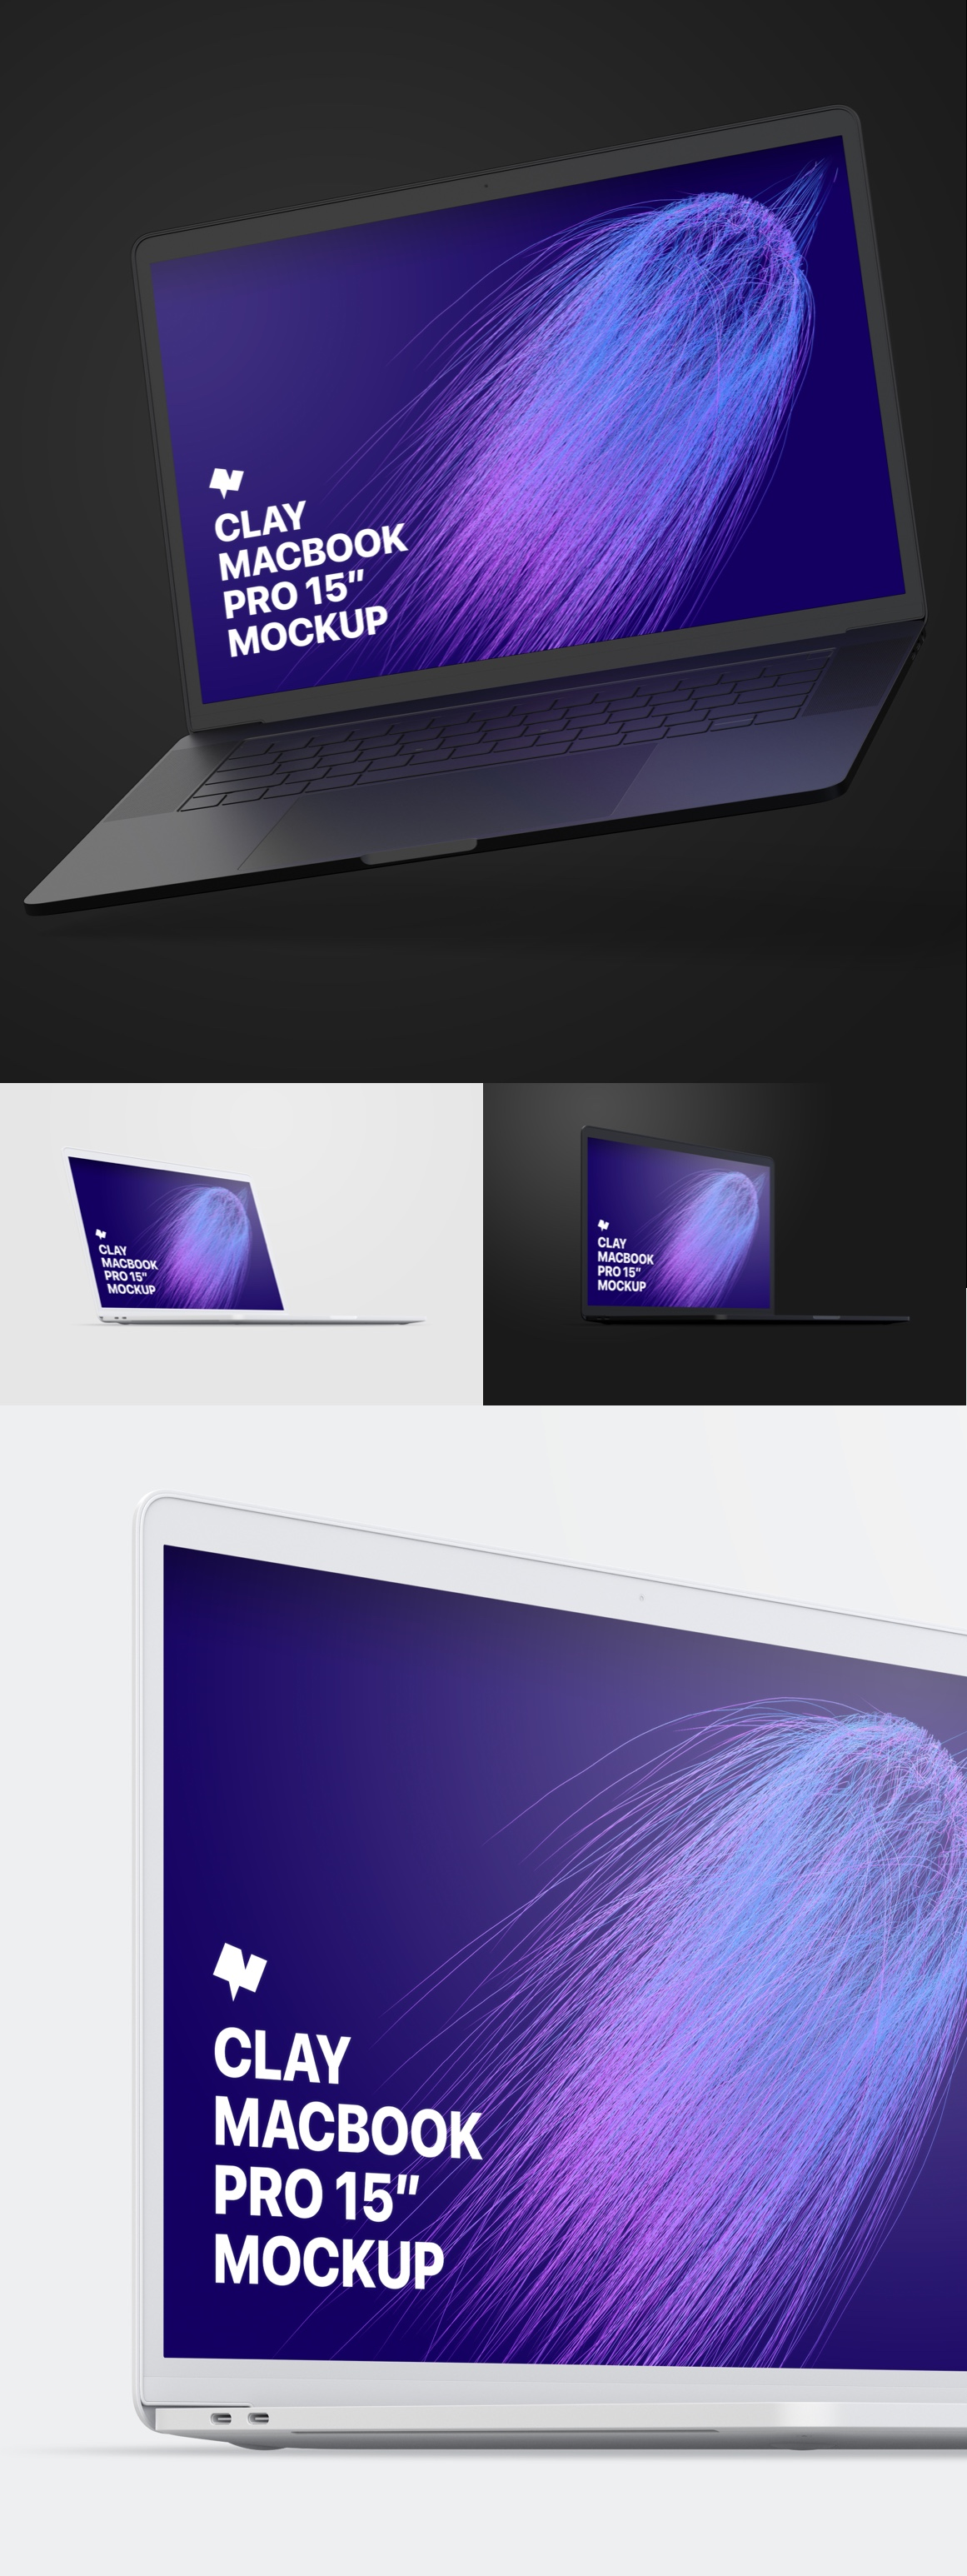 iPhone X And Clay MacBook Pro Mockups Pack